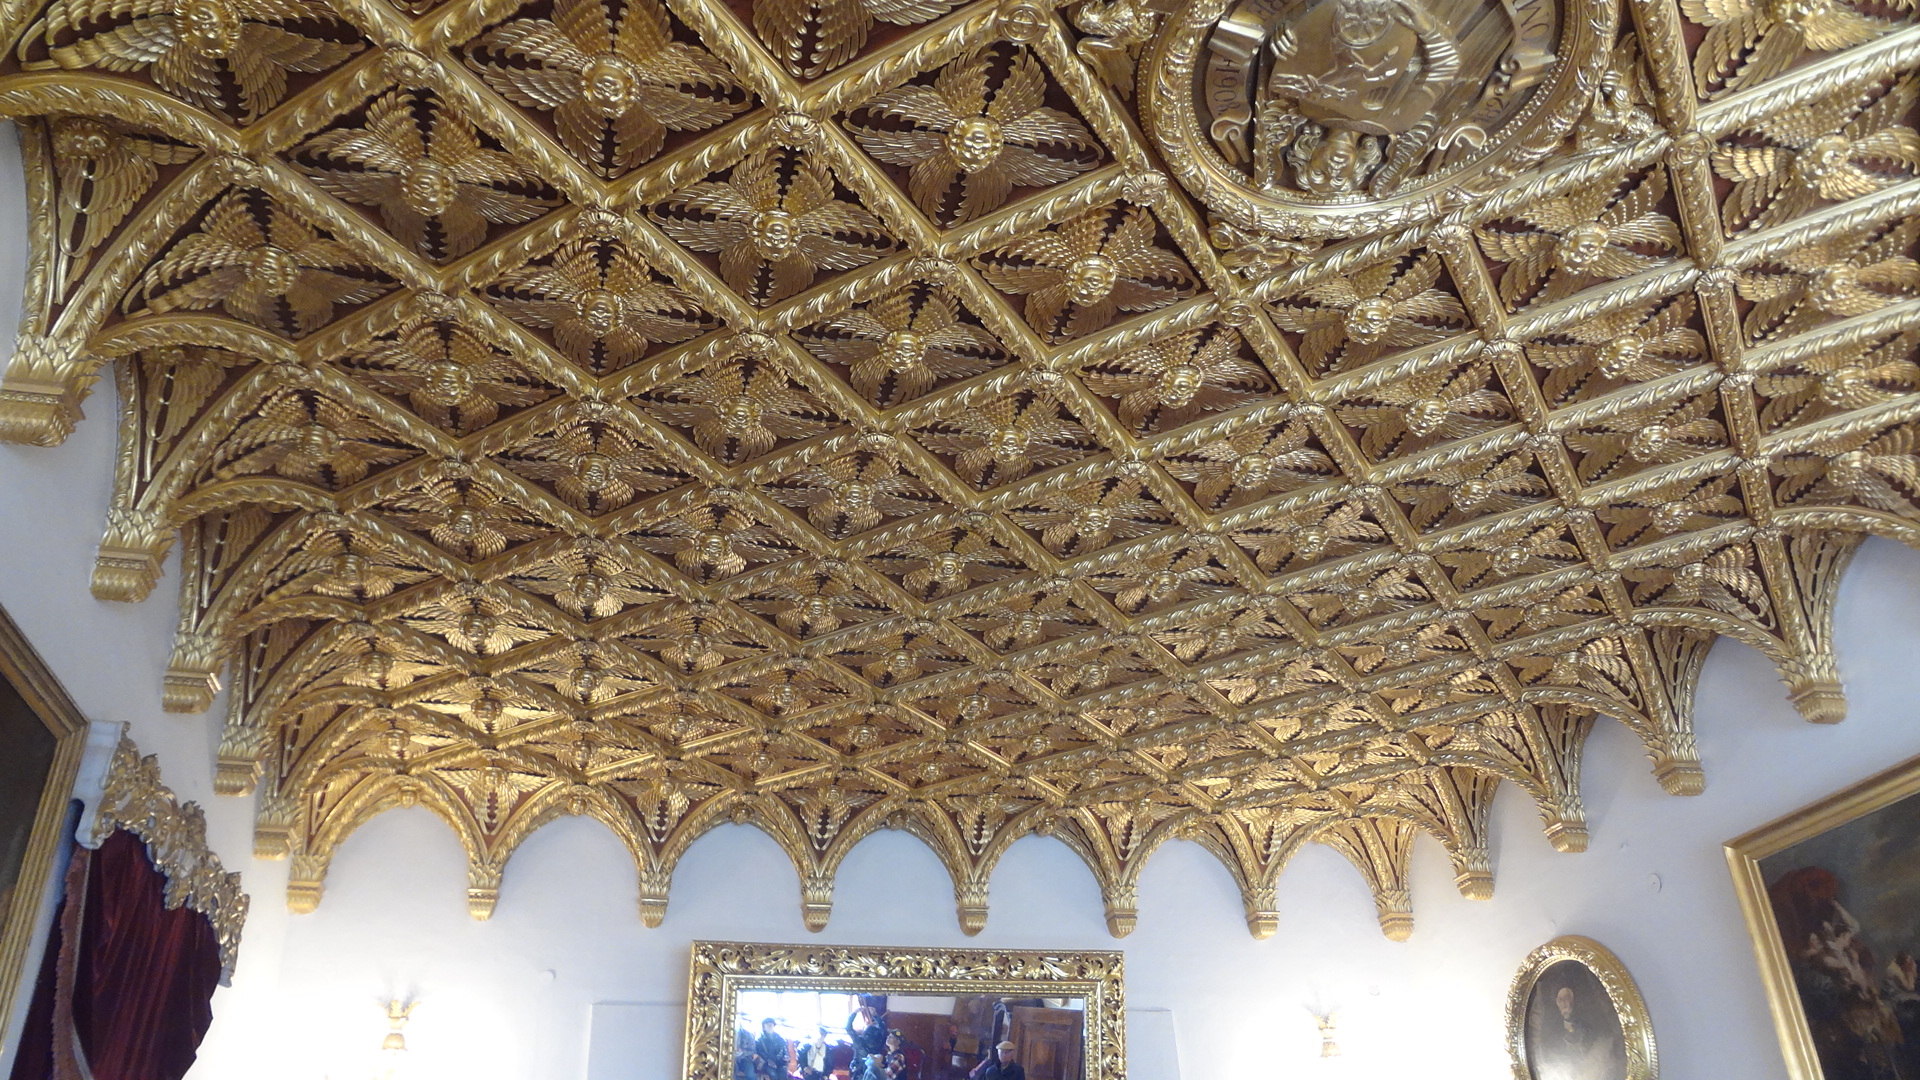 Dining Room Ceiling Bojnice Castle, Slovakia | Weepingredorger